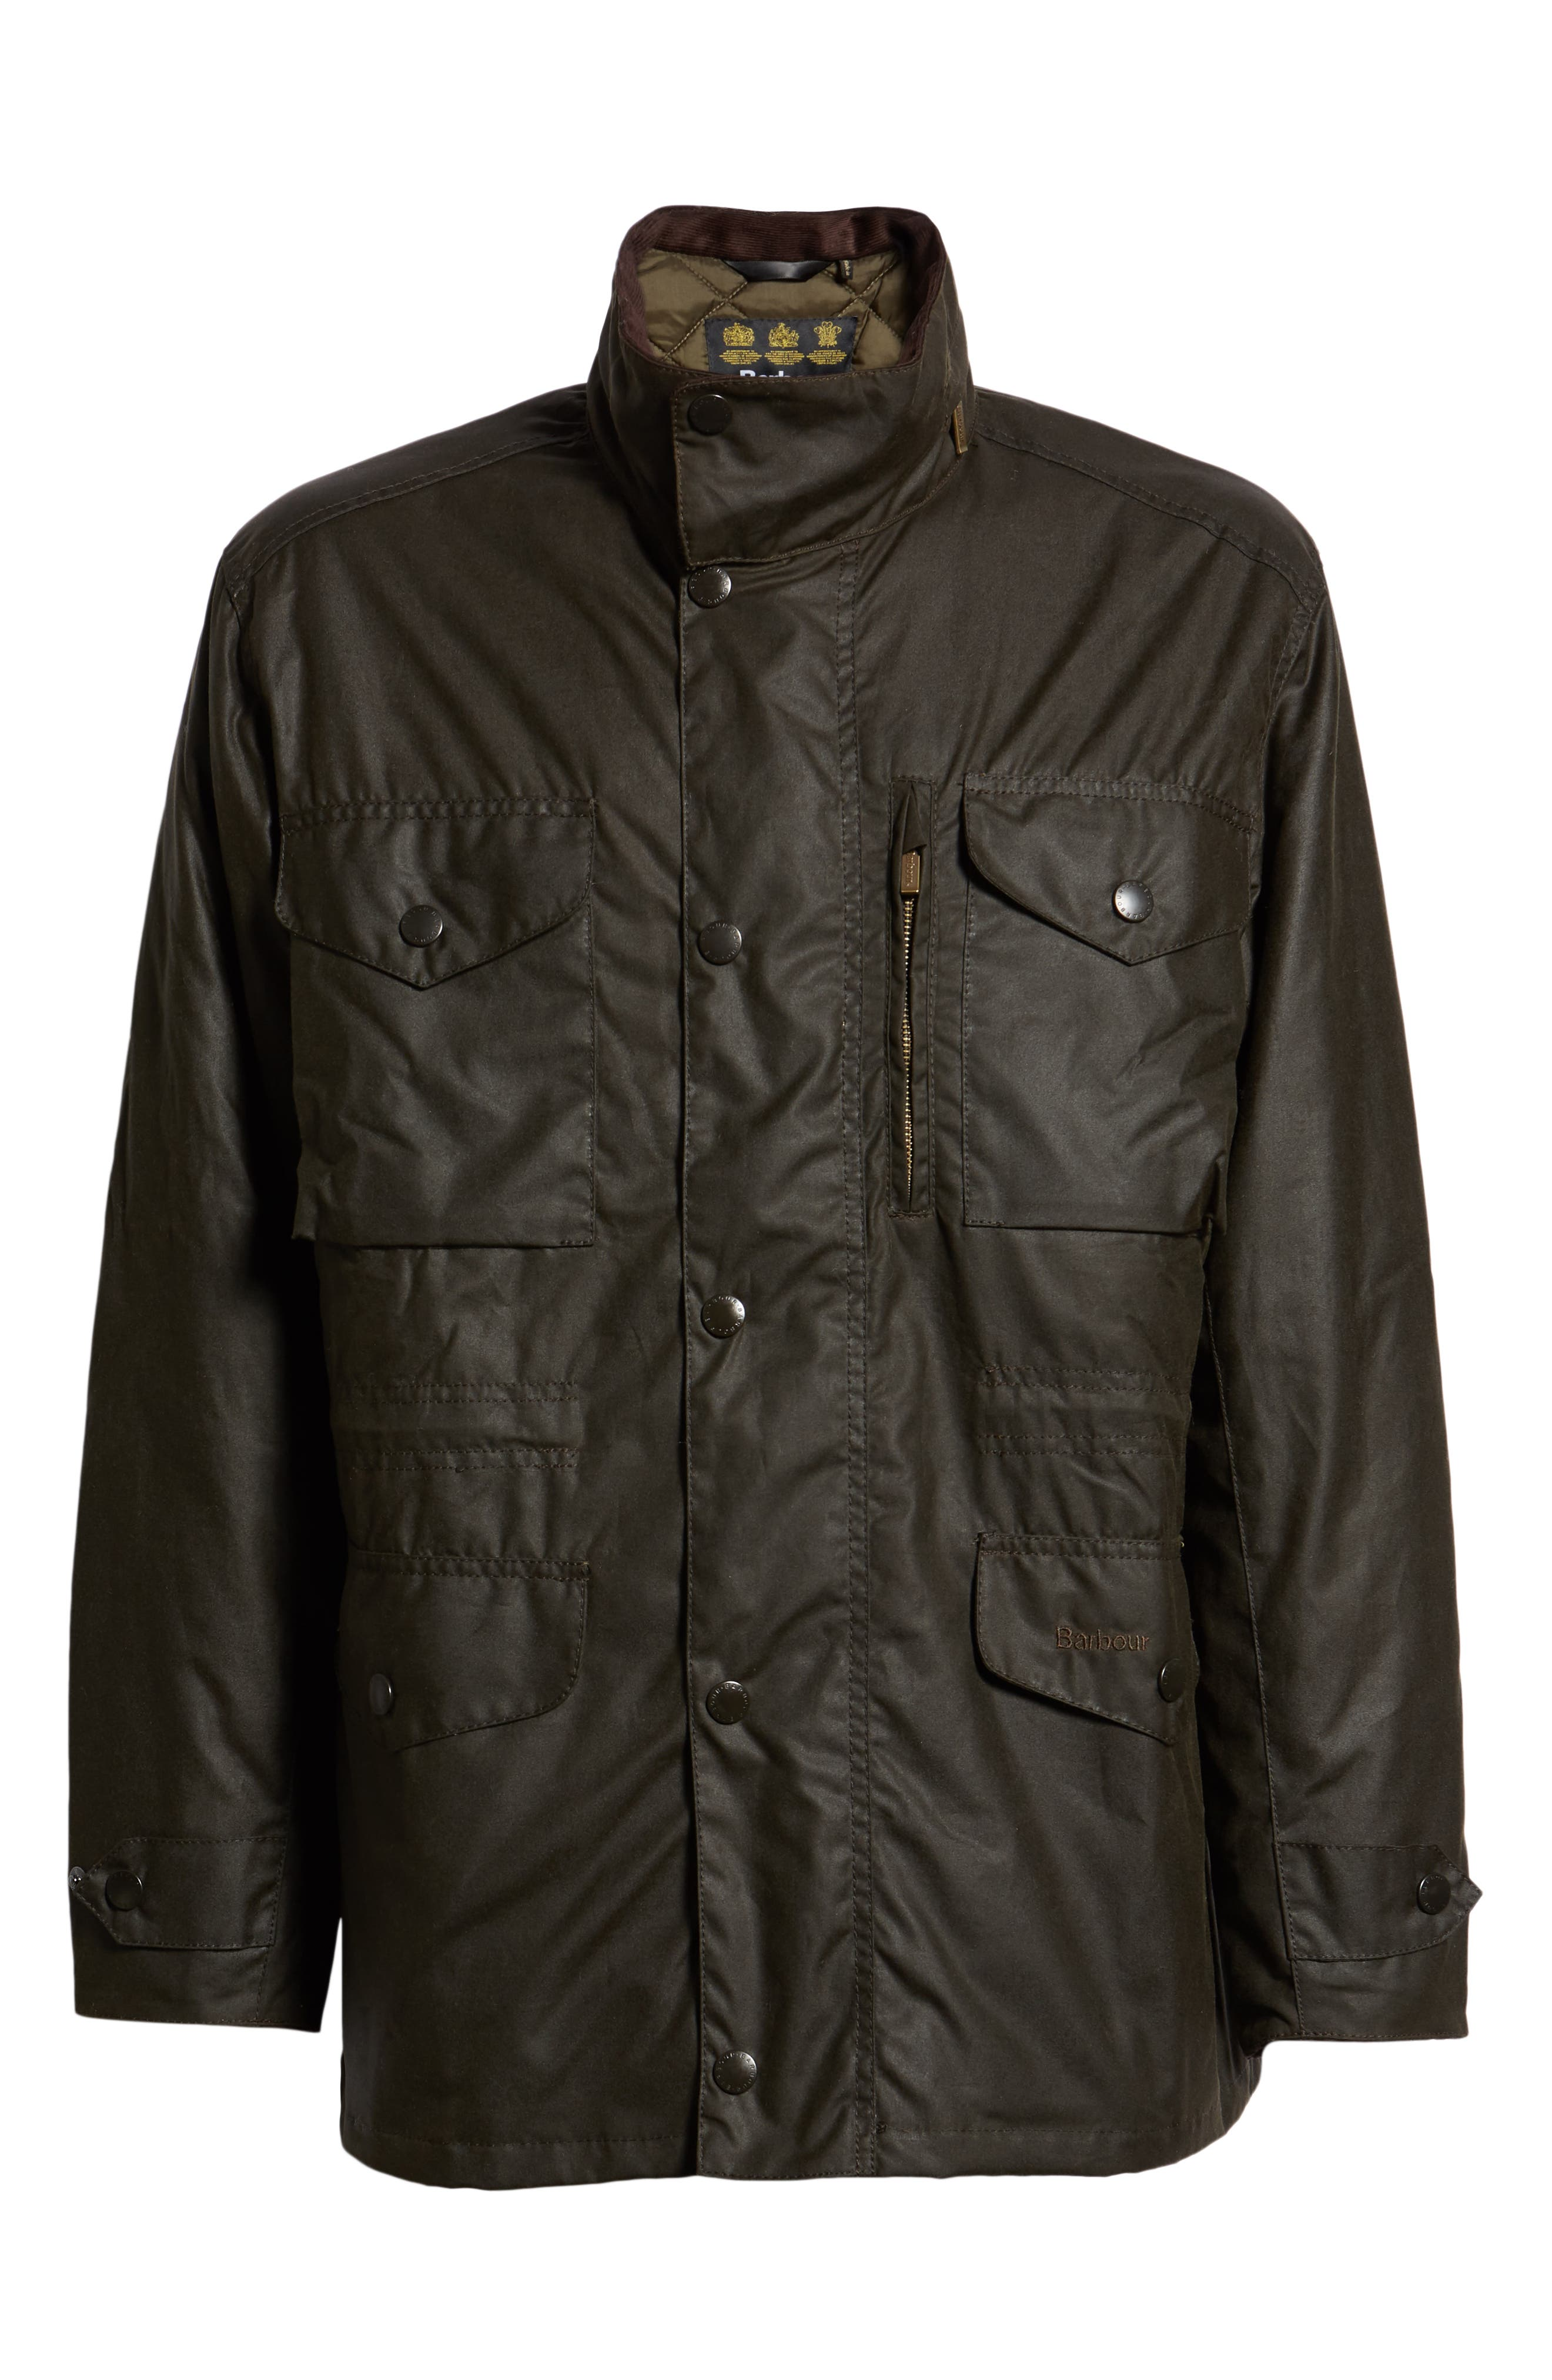 BARBOUR, Sapper Regular Fit Weatherproof Waxed Cotton Jacket, Alternate thumbnail 6, color, OLIVE